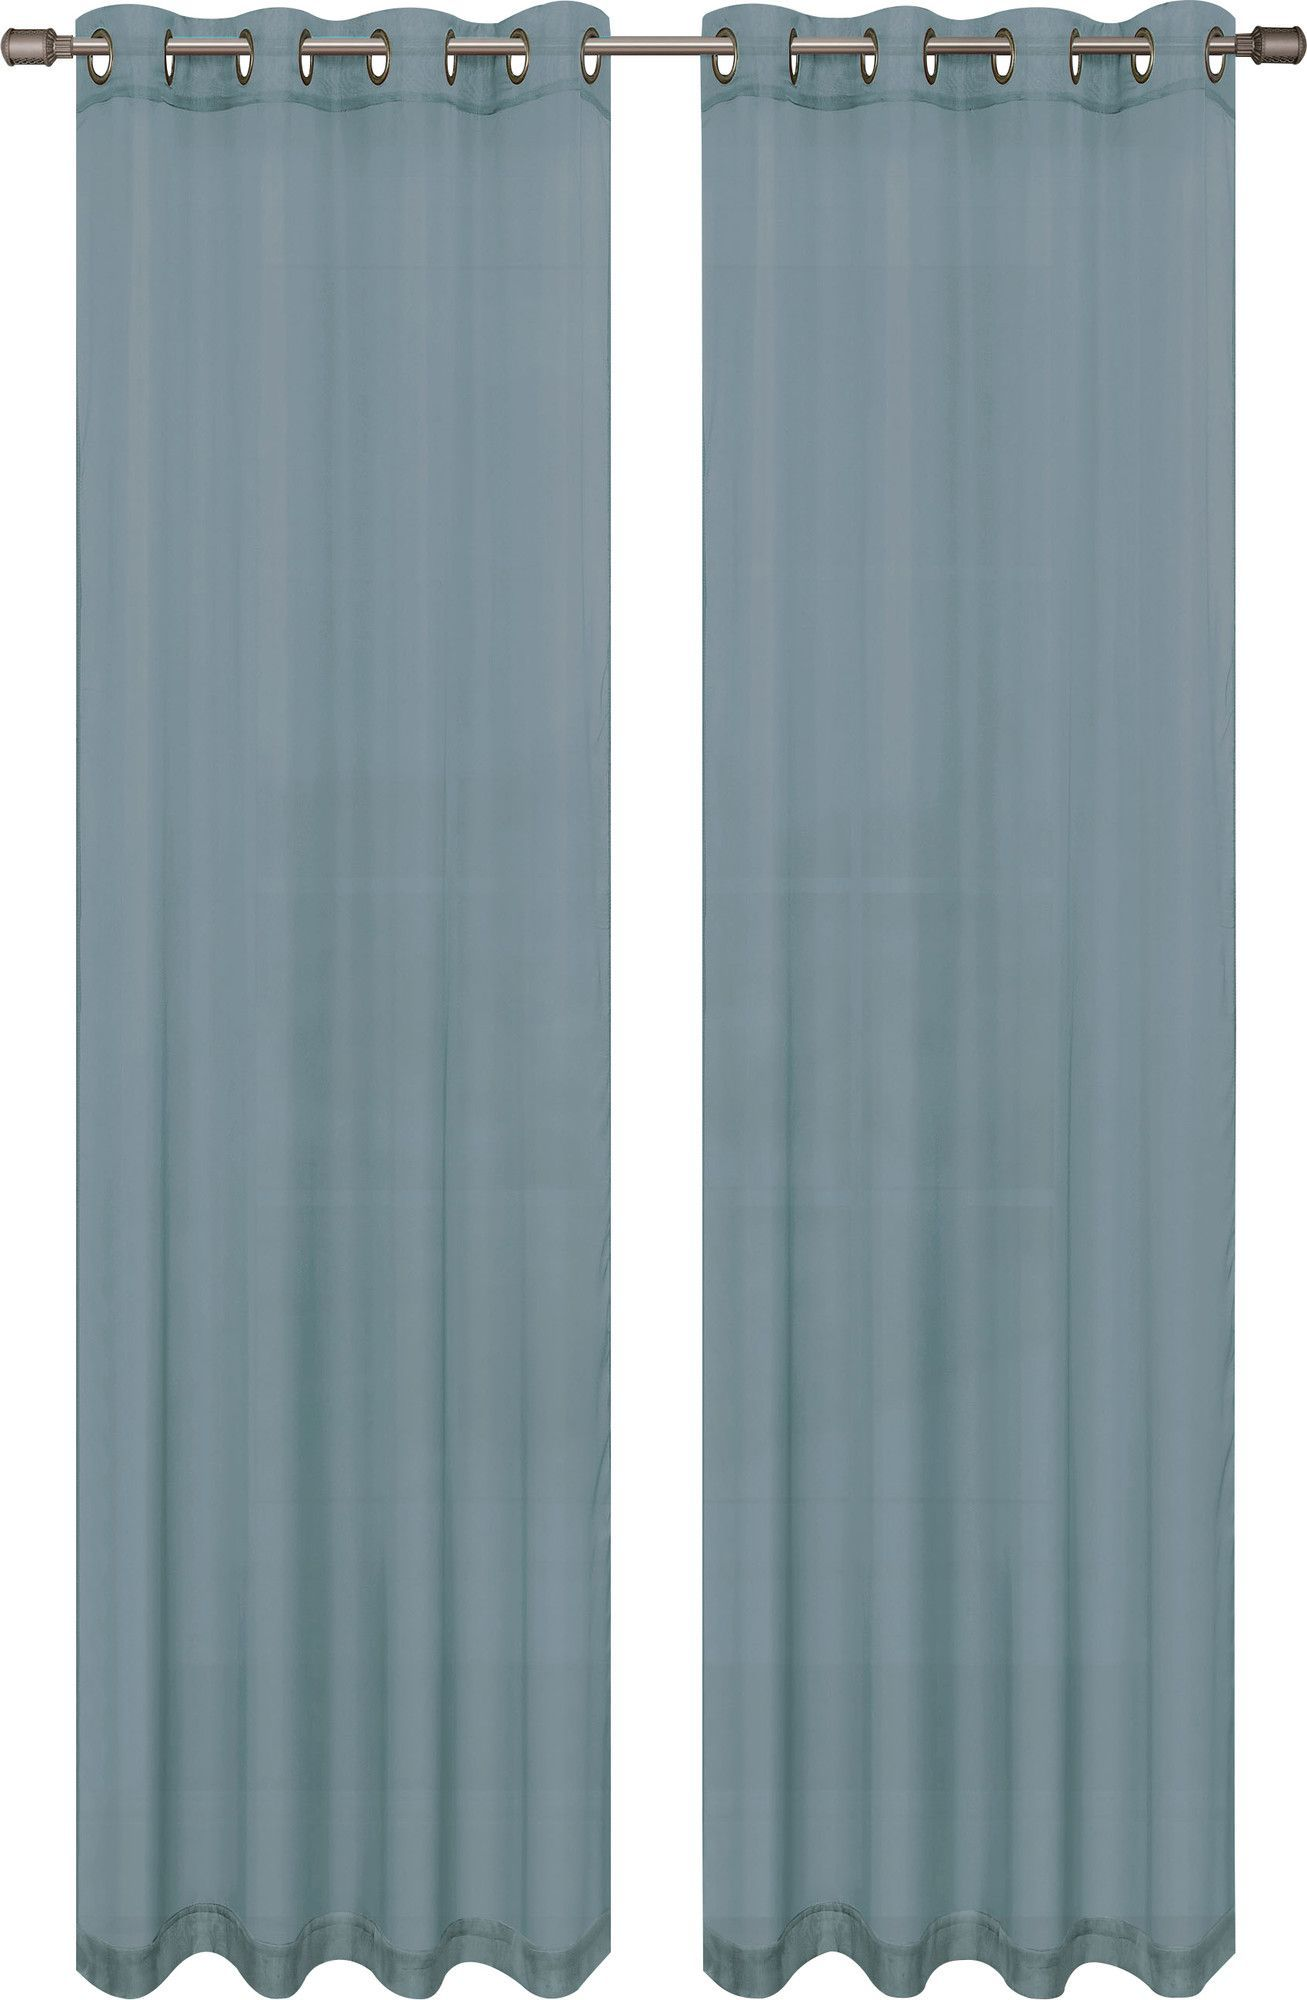 Gallimore Solid Sheer Grommet Curtain Panels Panel Curtains